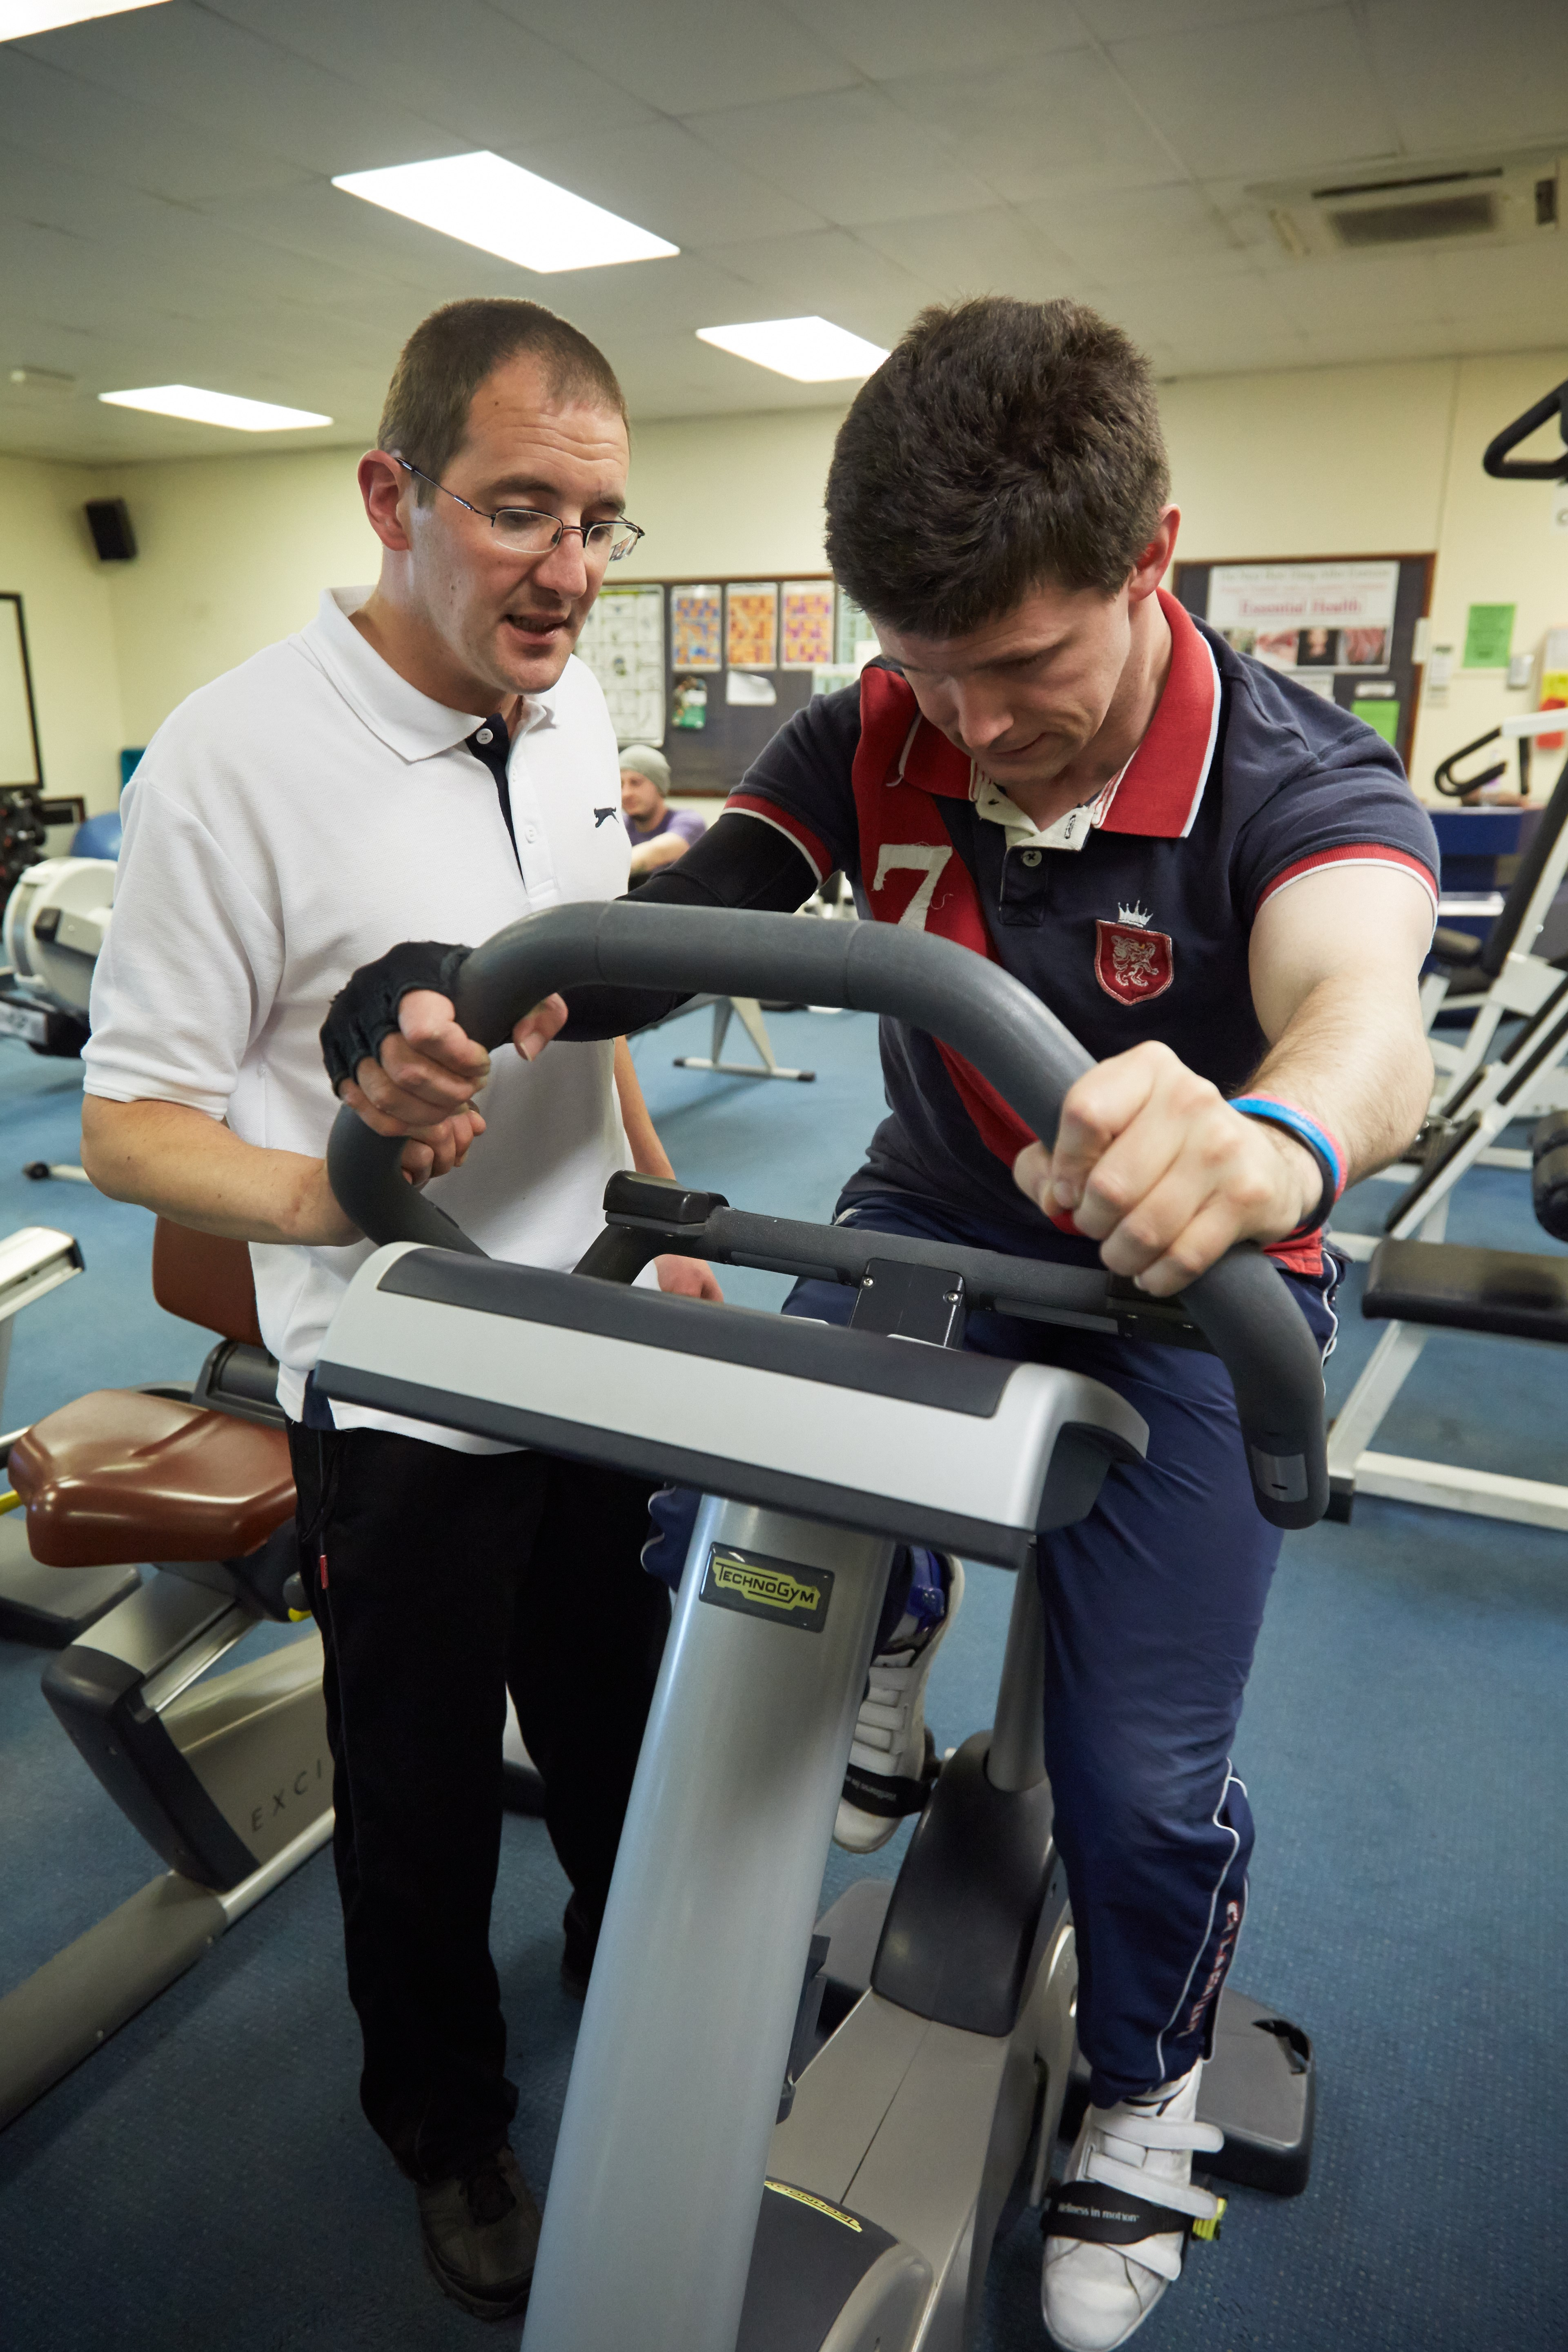 service user in physical therapy with support worker observing in Fen House